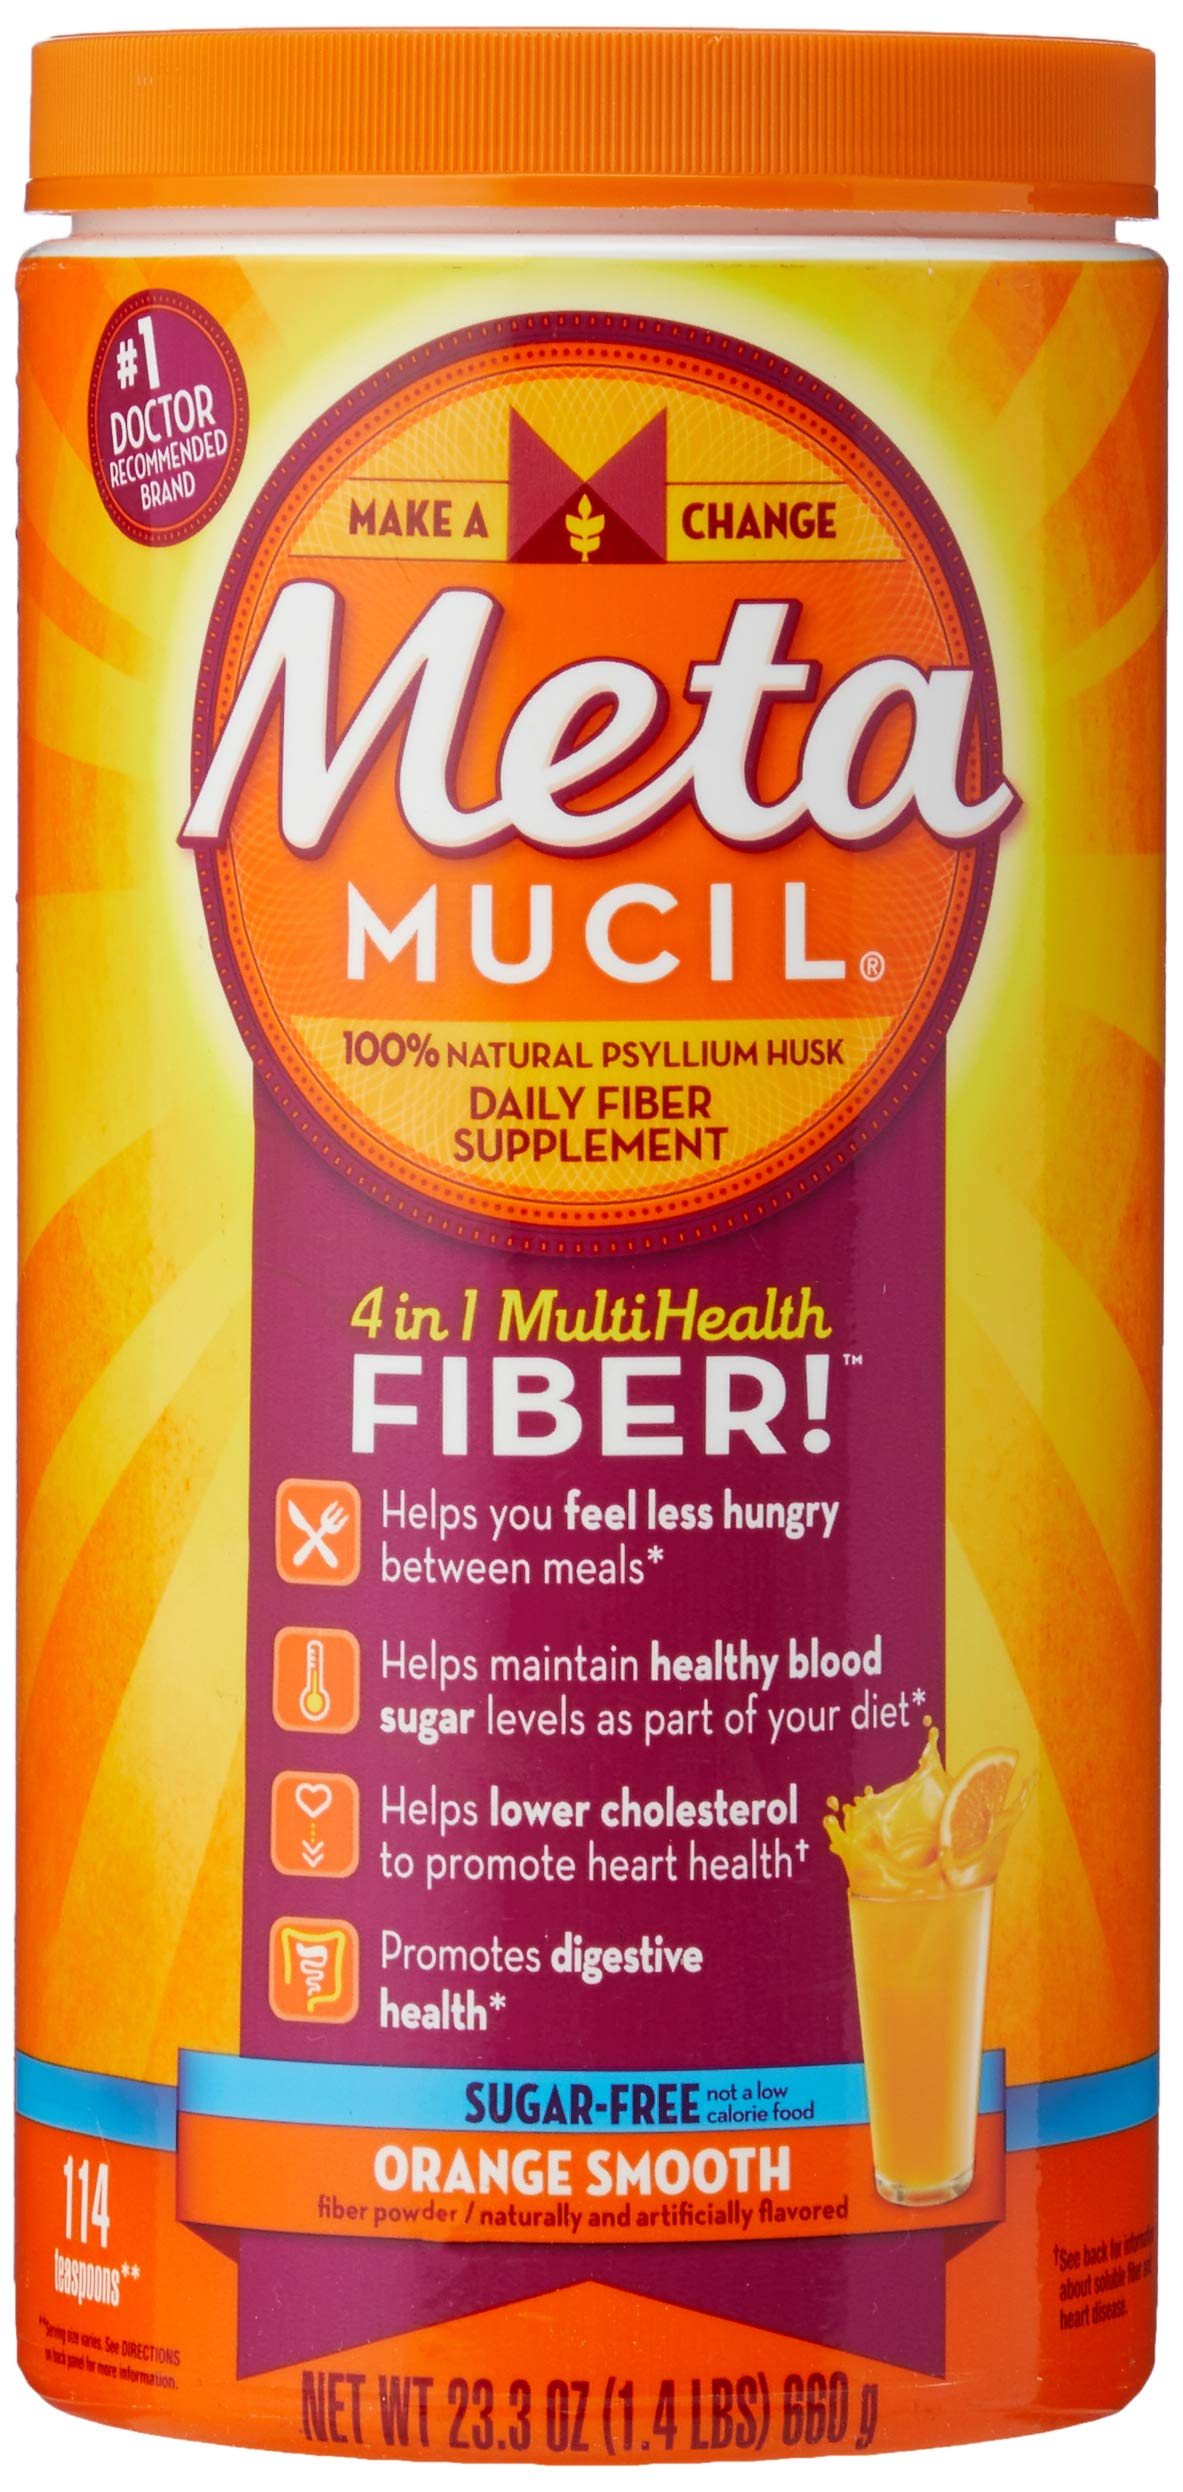 Metamucil Daily Fiber Supplement, Orange Smooth Sugar Free Psyllium Husk Fiber Powder, 114 Doses